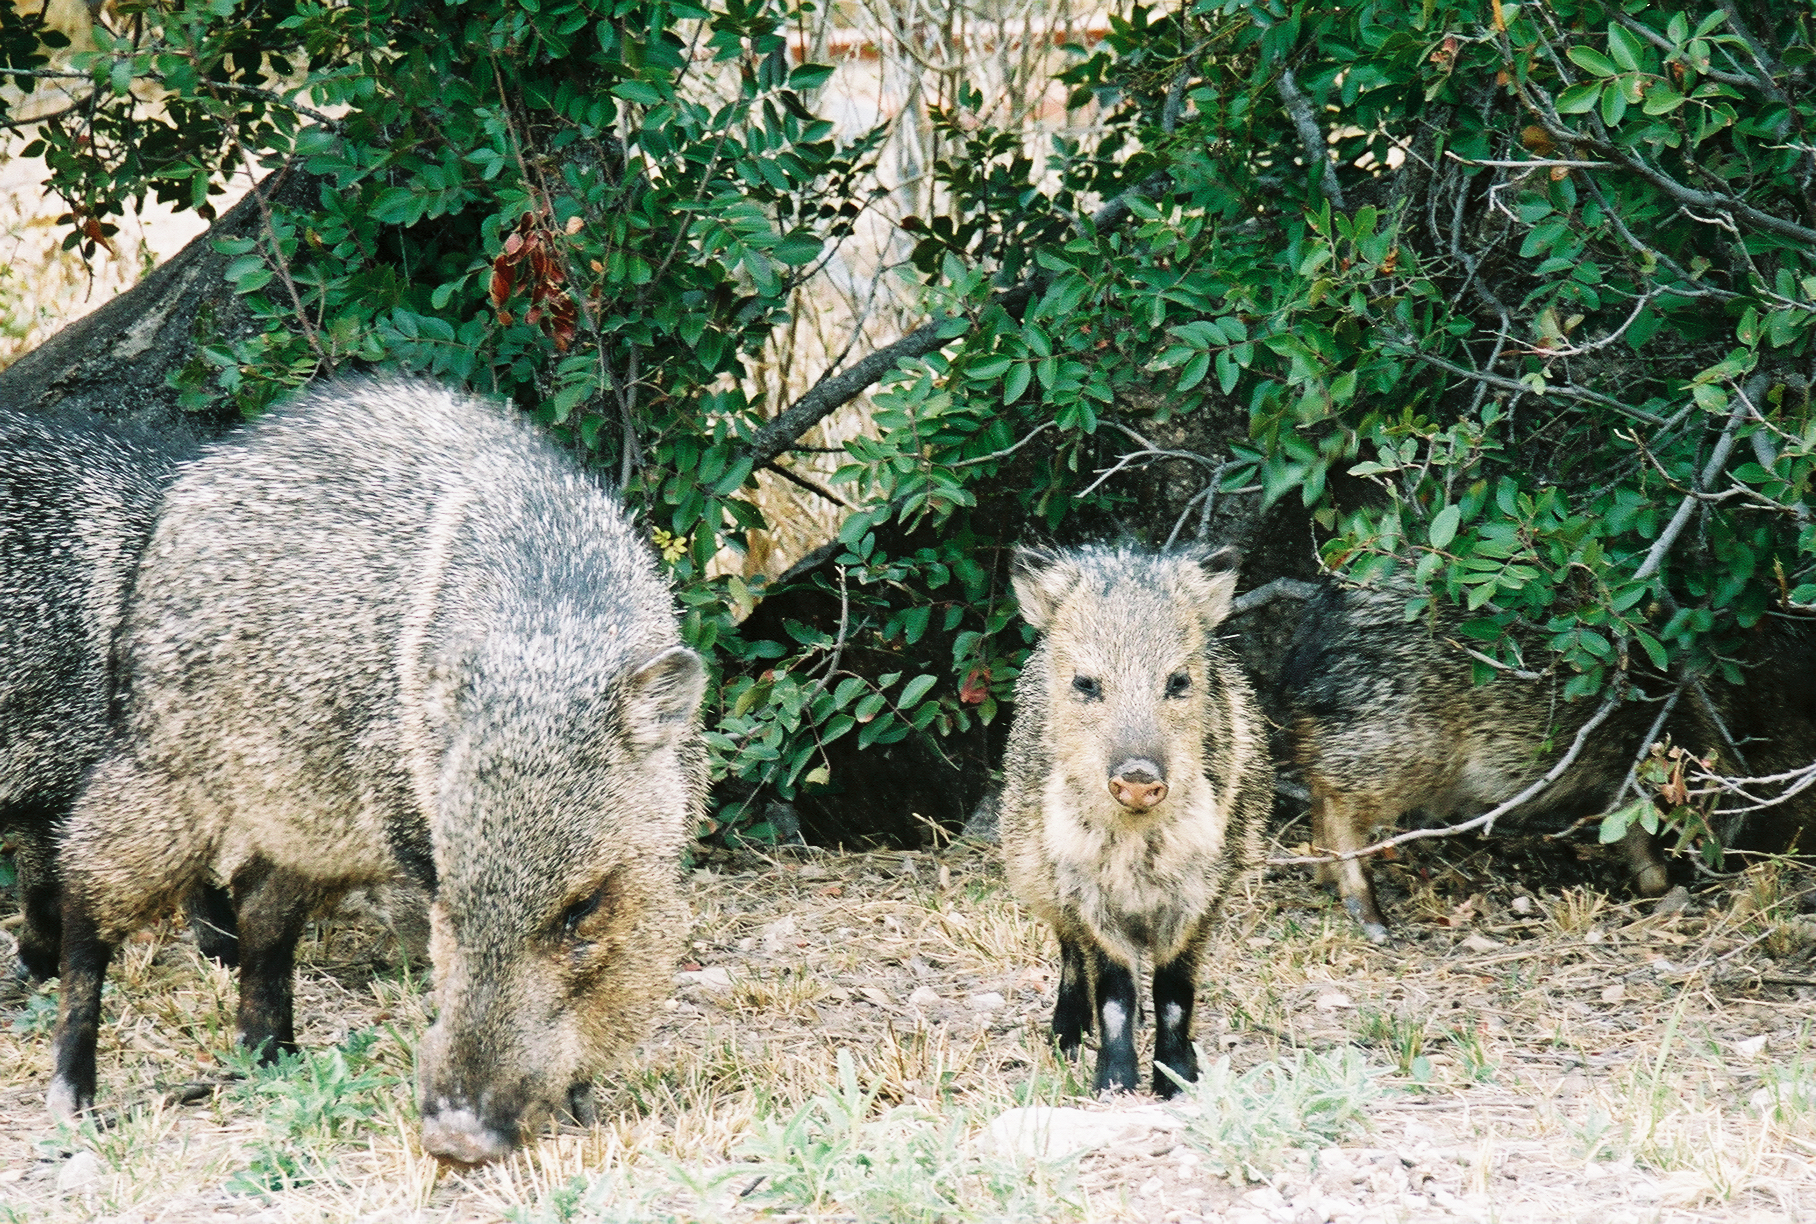 Javelinas in the park